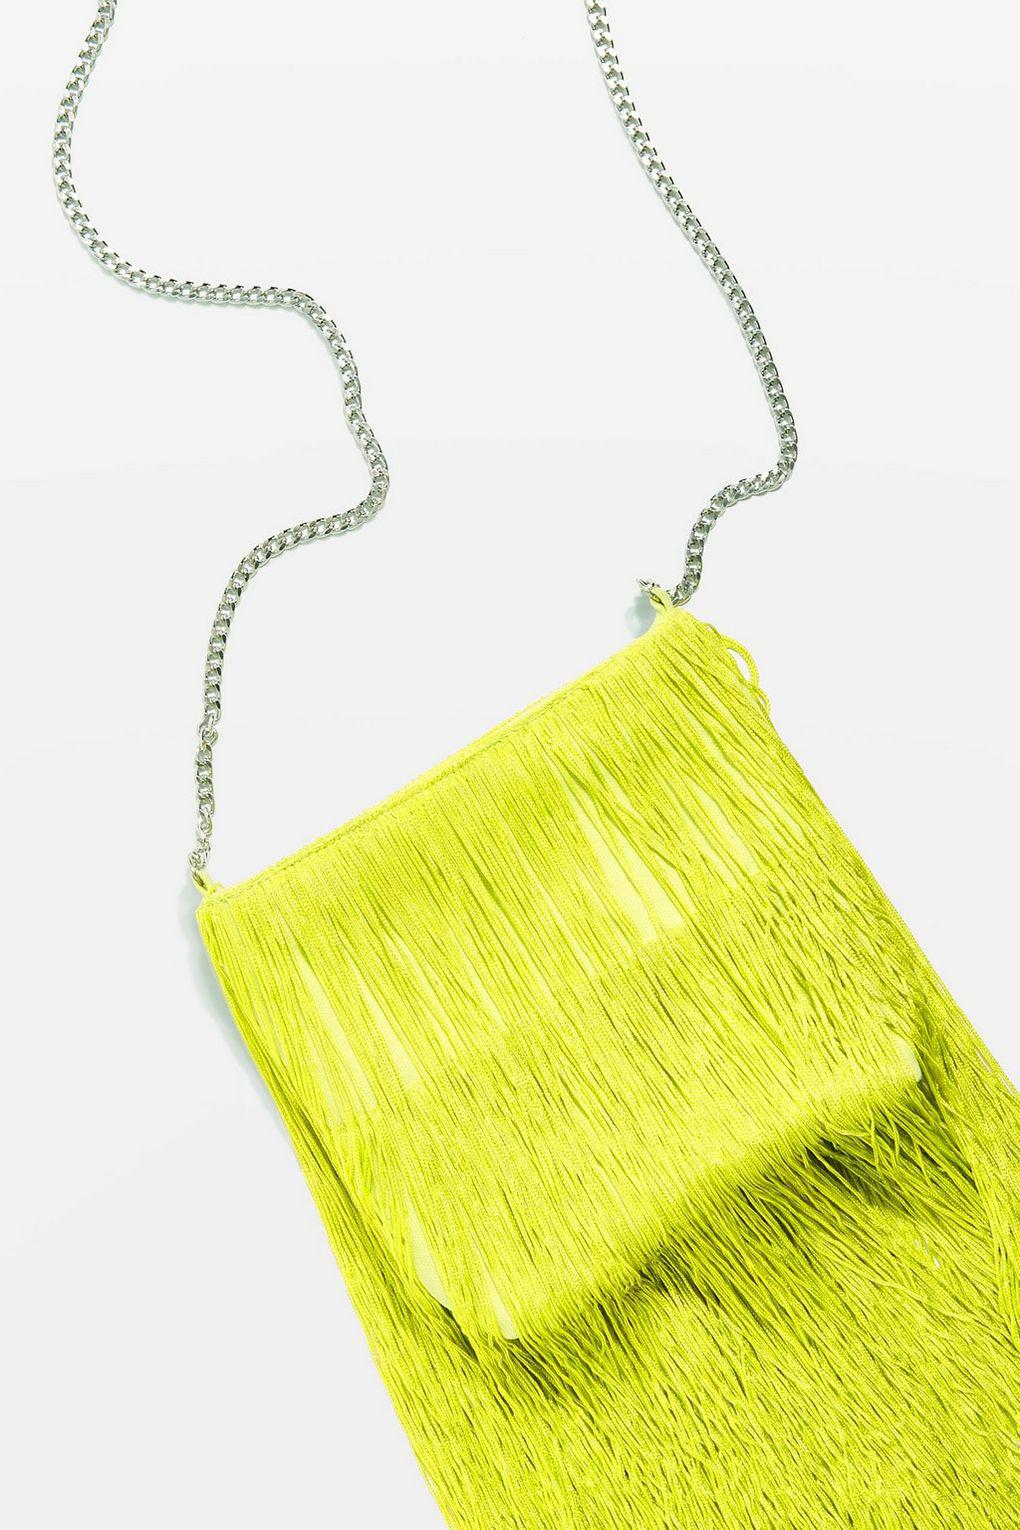 TOPSHOP Cotton Frill Fringe Cross Body Bag in Lime (Yellow)